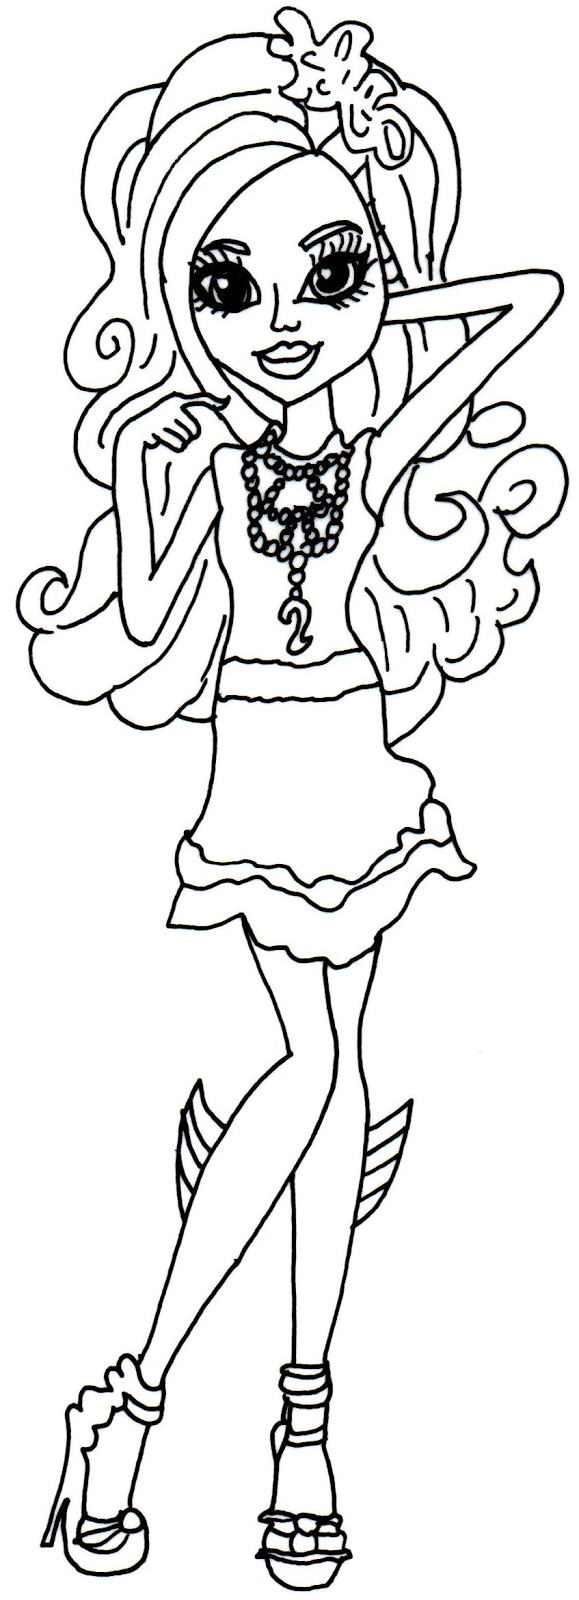 free printable monster high coloring pages lagoona blue frights